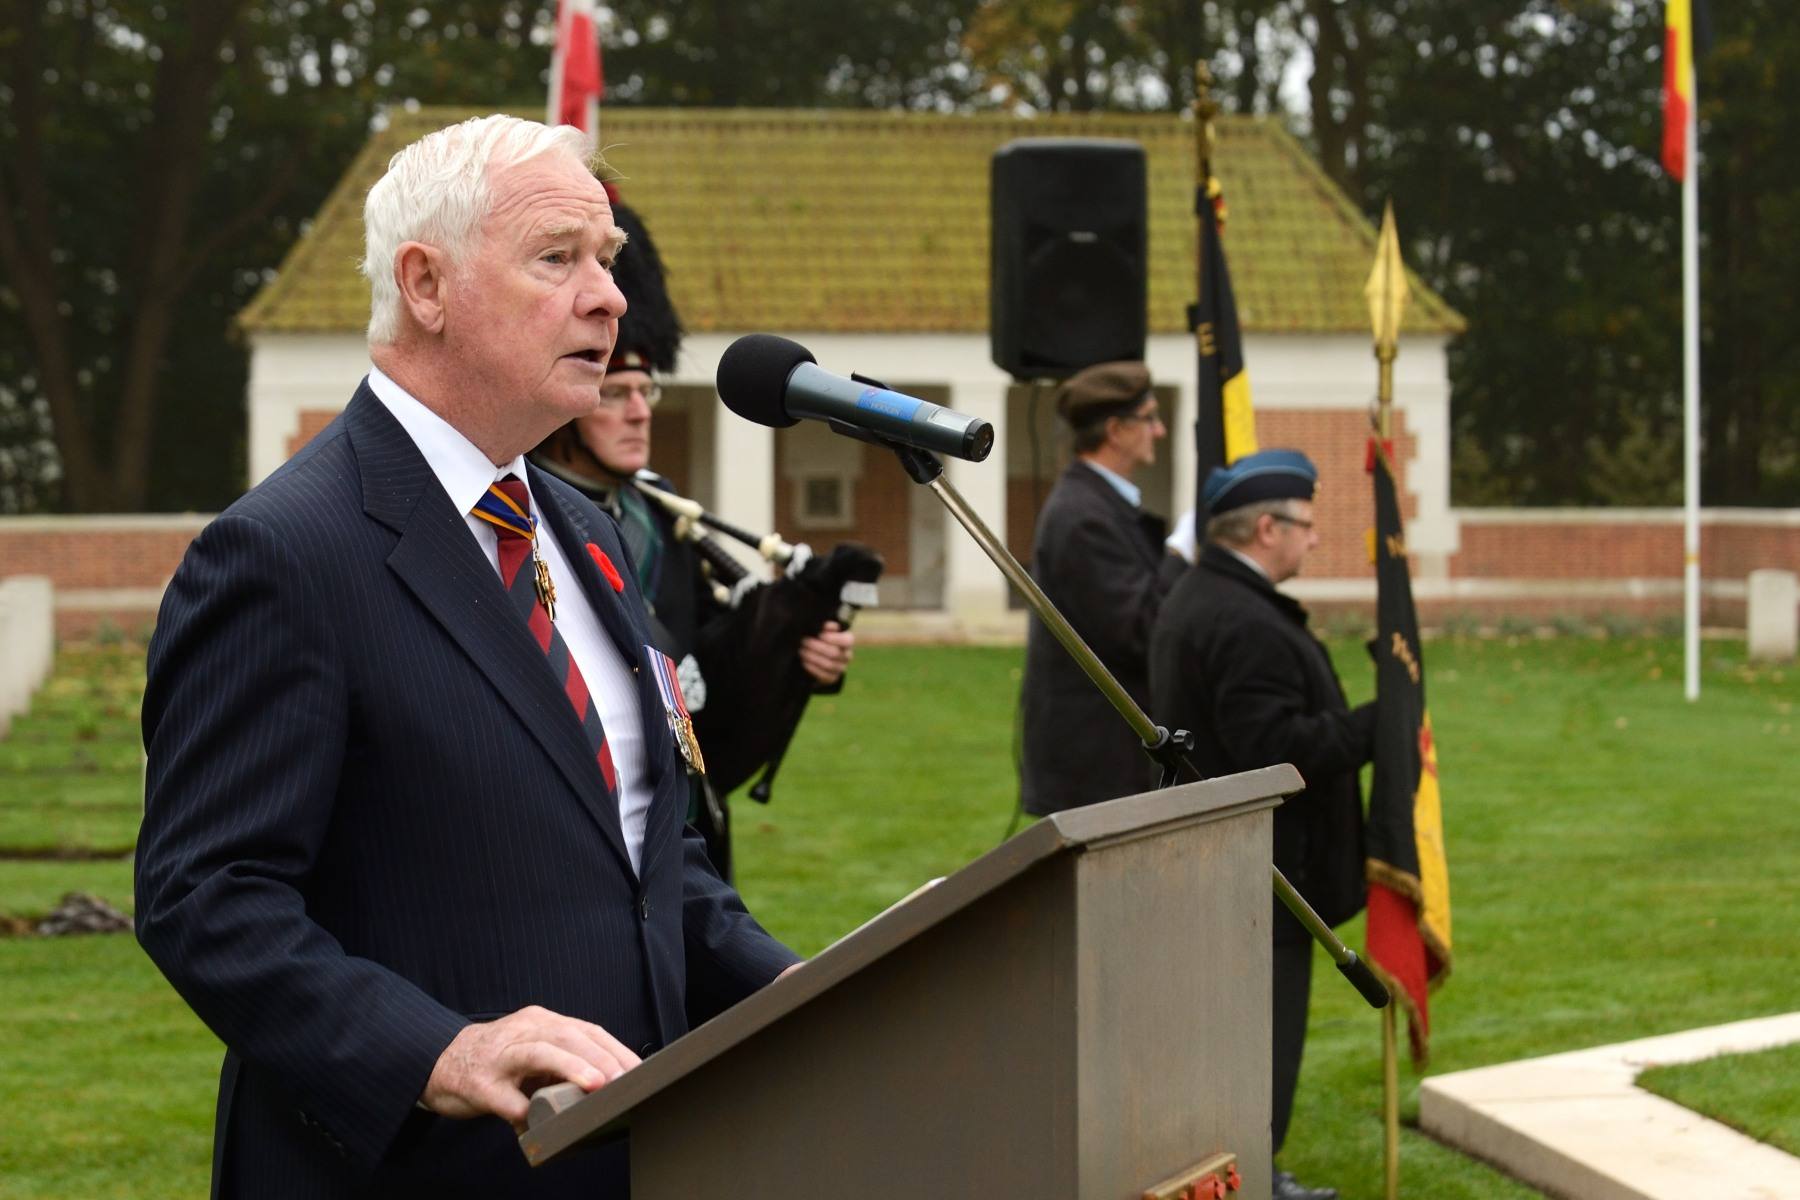 "On October 28, 2014, Their Excellencies the Right Honourable David Johnston, Governor General of Canada, and Mrs. Sharon Johnston, as well as Canadian delegates, paid tribute to those who perished during the Liberation of Belgium in the autumn of 1944 at the Adegem Canadian War Cemetery. ""The bravery and sacrifices of those who fought in this region were central to the outcome of the larger struggle against occupation. I am delighted that one of them, Canadian Second World War Veteran Sidney Cole, is among us. This part of Belgium, its waterways, landscapes and communities will always hold a prominent place in the hearts of Canadians,"" said His Excellency."